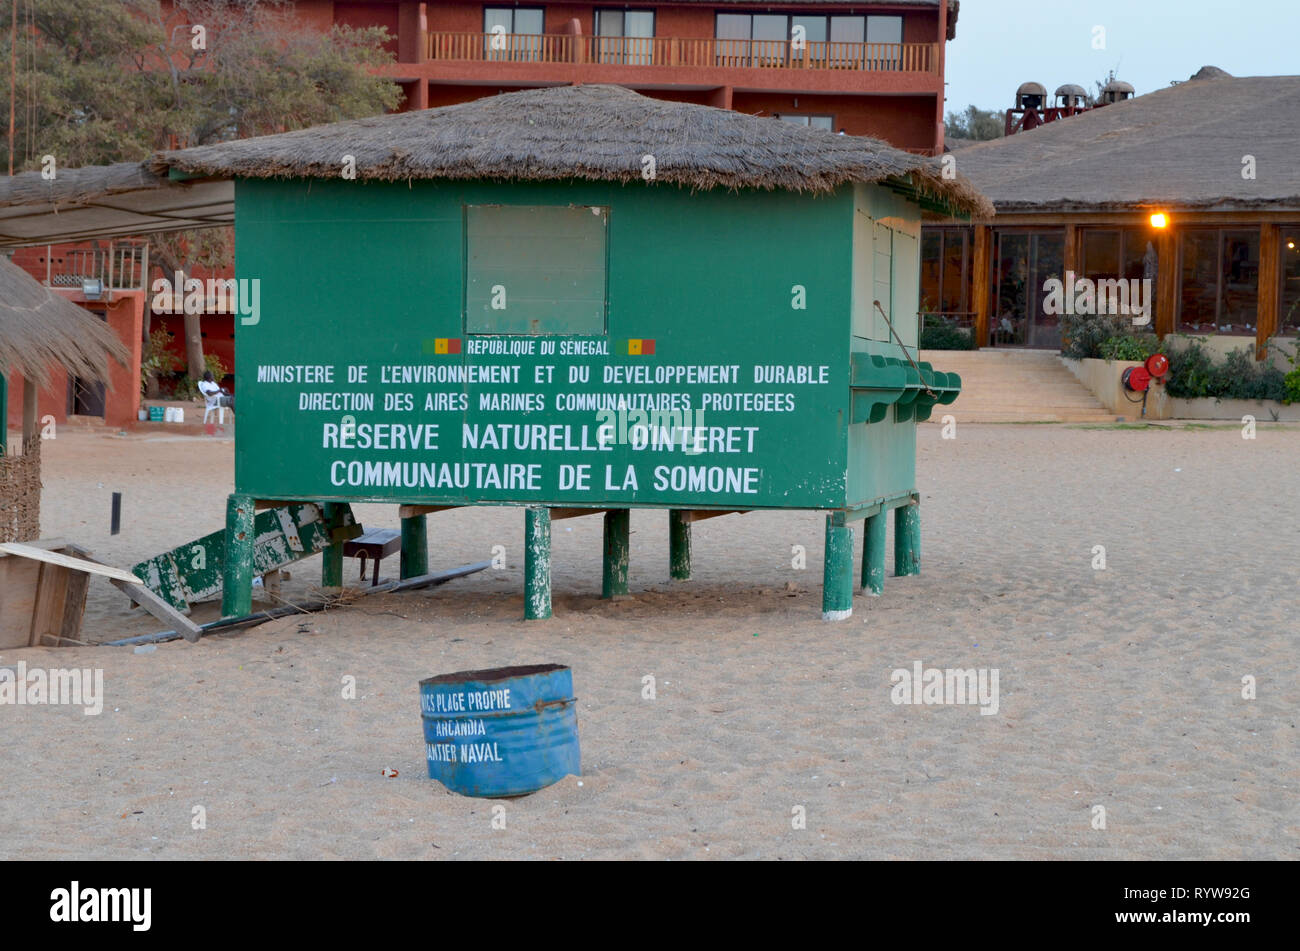 Reserve Naturelle Communautaire de la Somone, Senegal – an example of a community-managed natural reserve - Stock Image